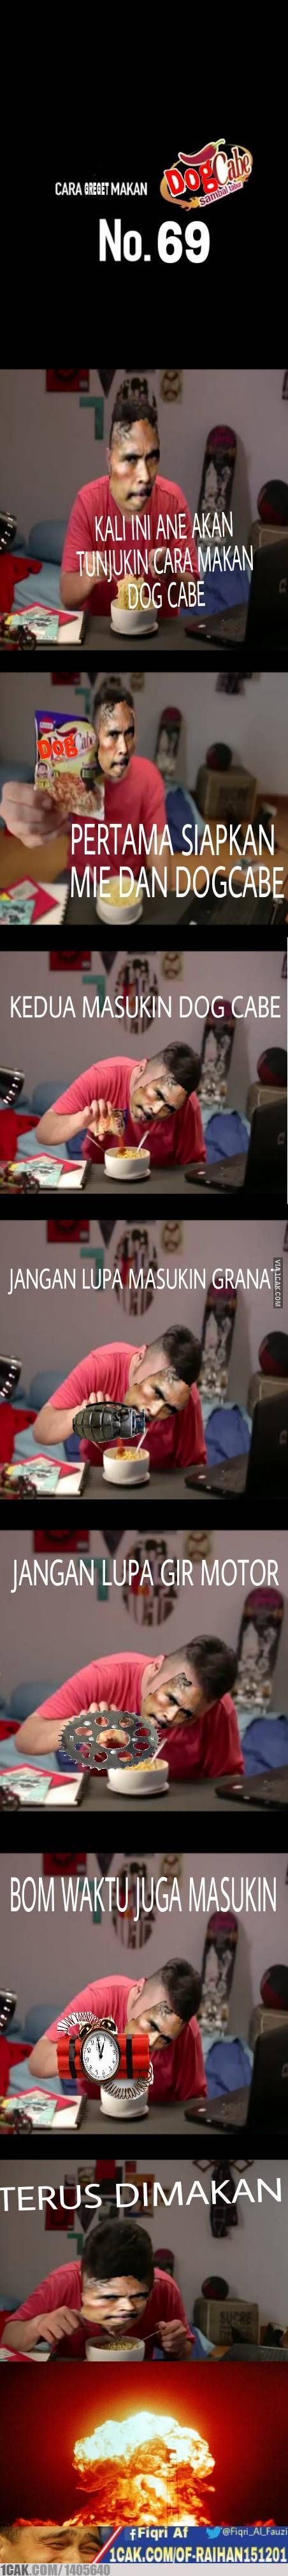 17 Best Ideas About Meme Indonesia On Pinterest Indonesia Humor